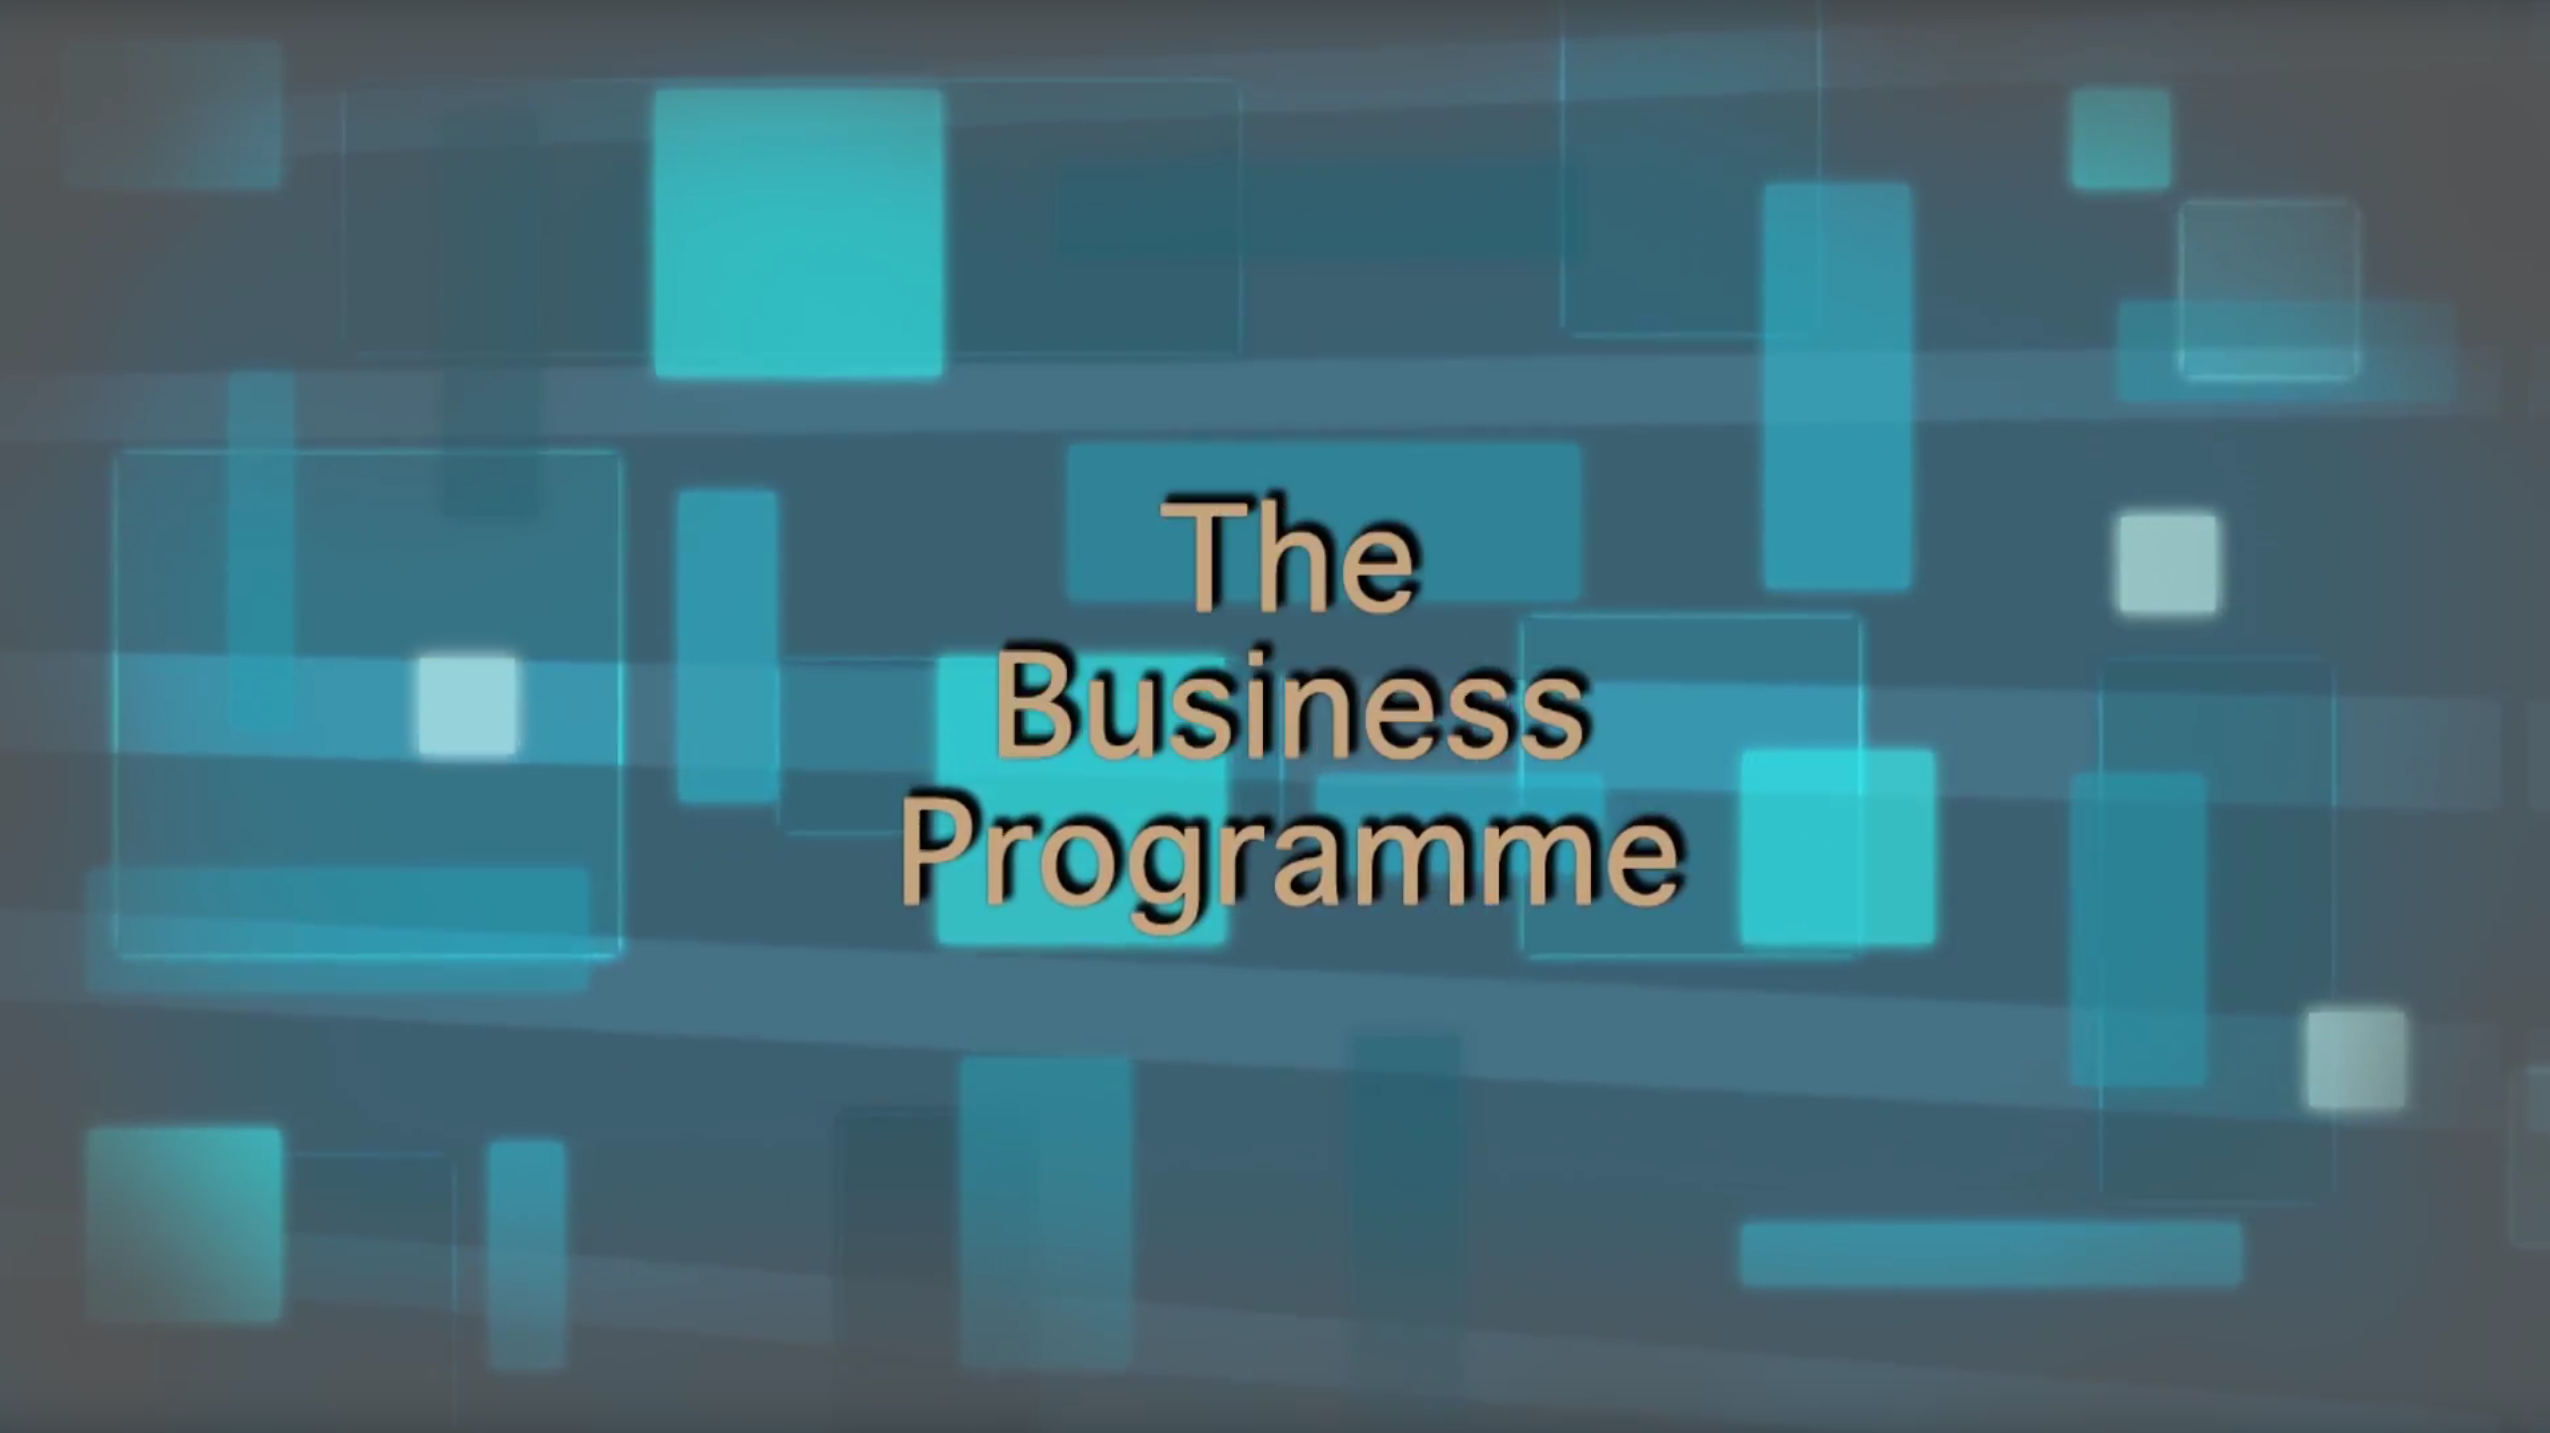 The Business Programme - Chris Henry